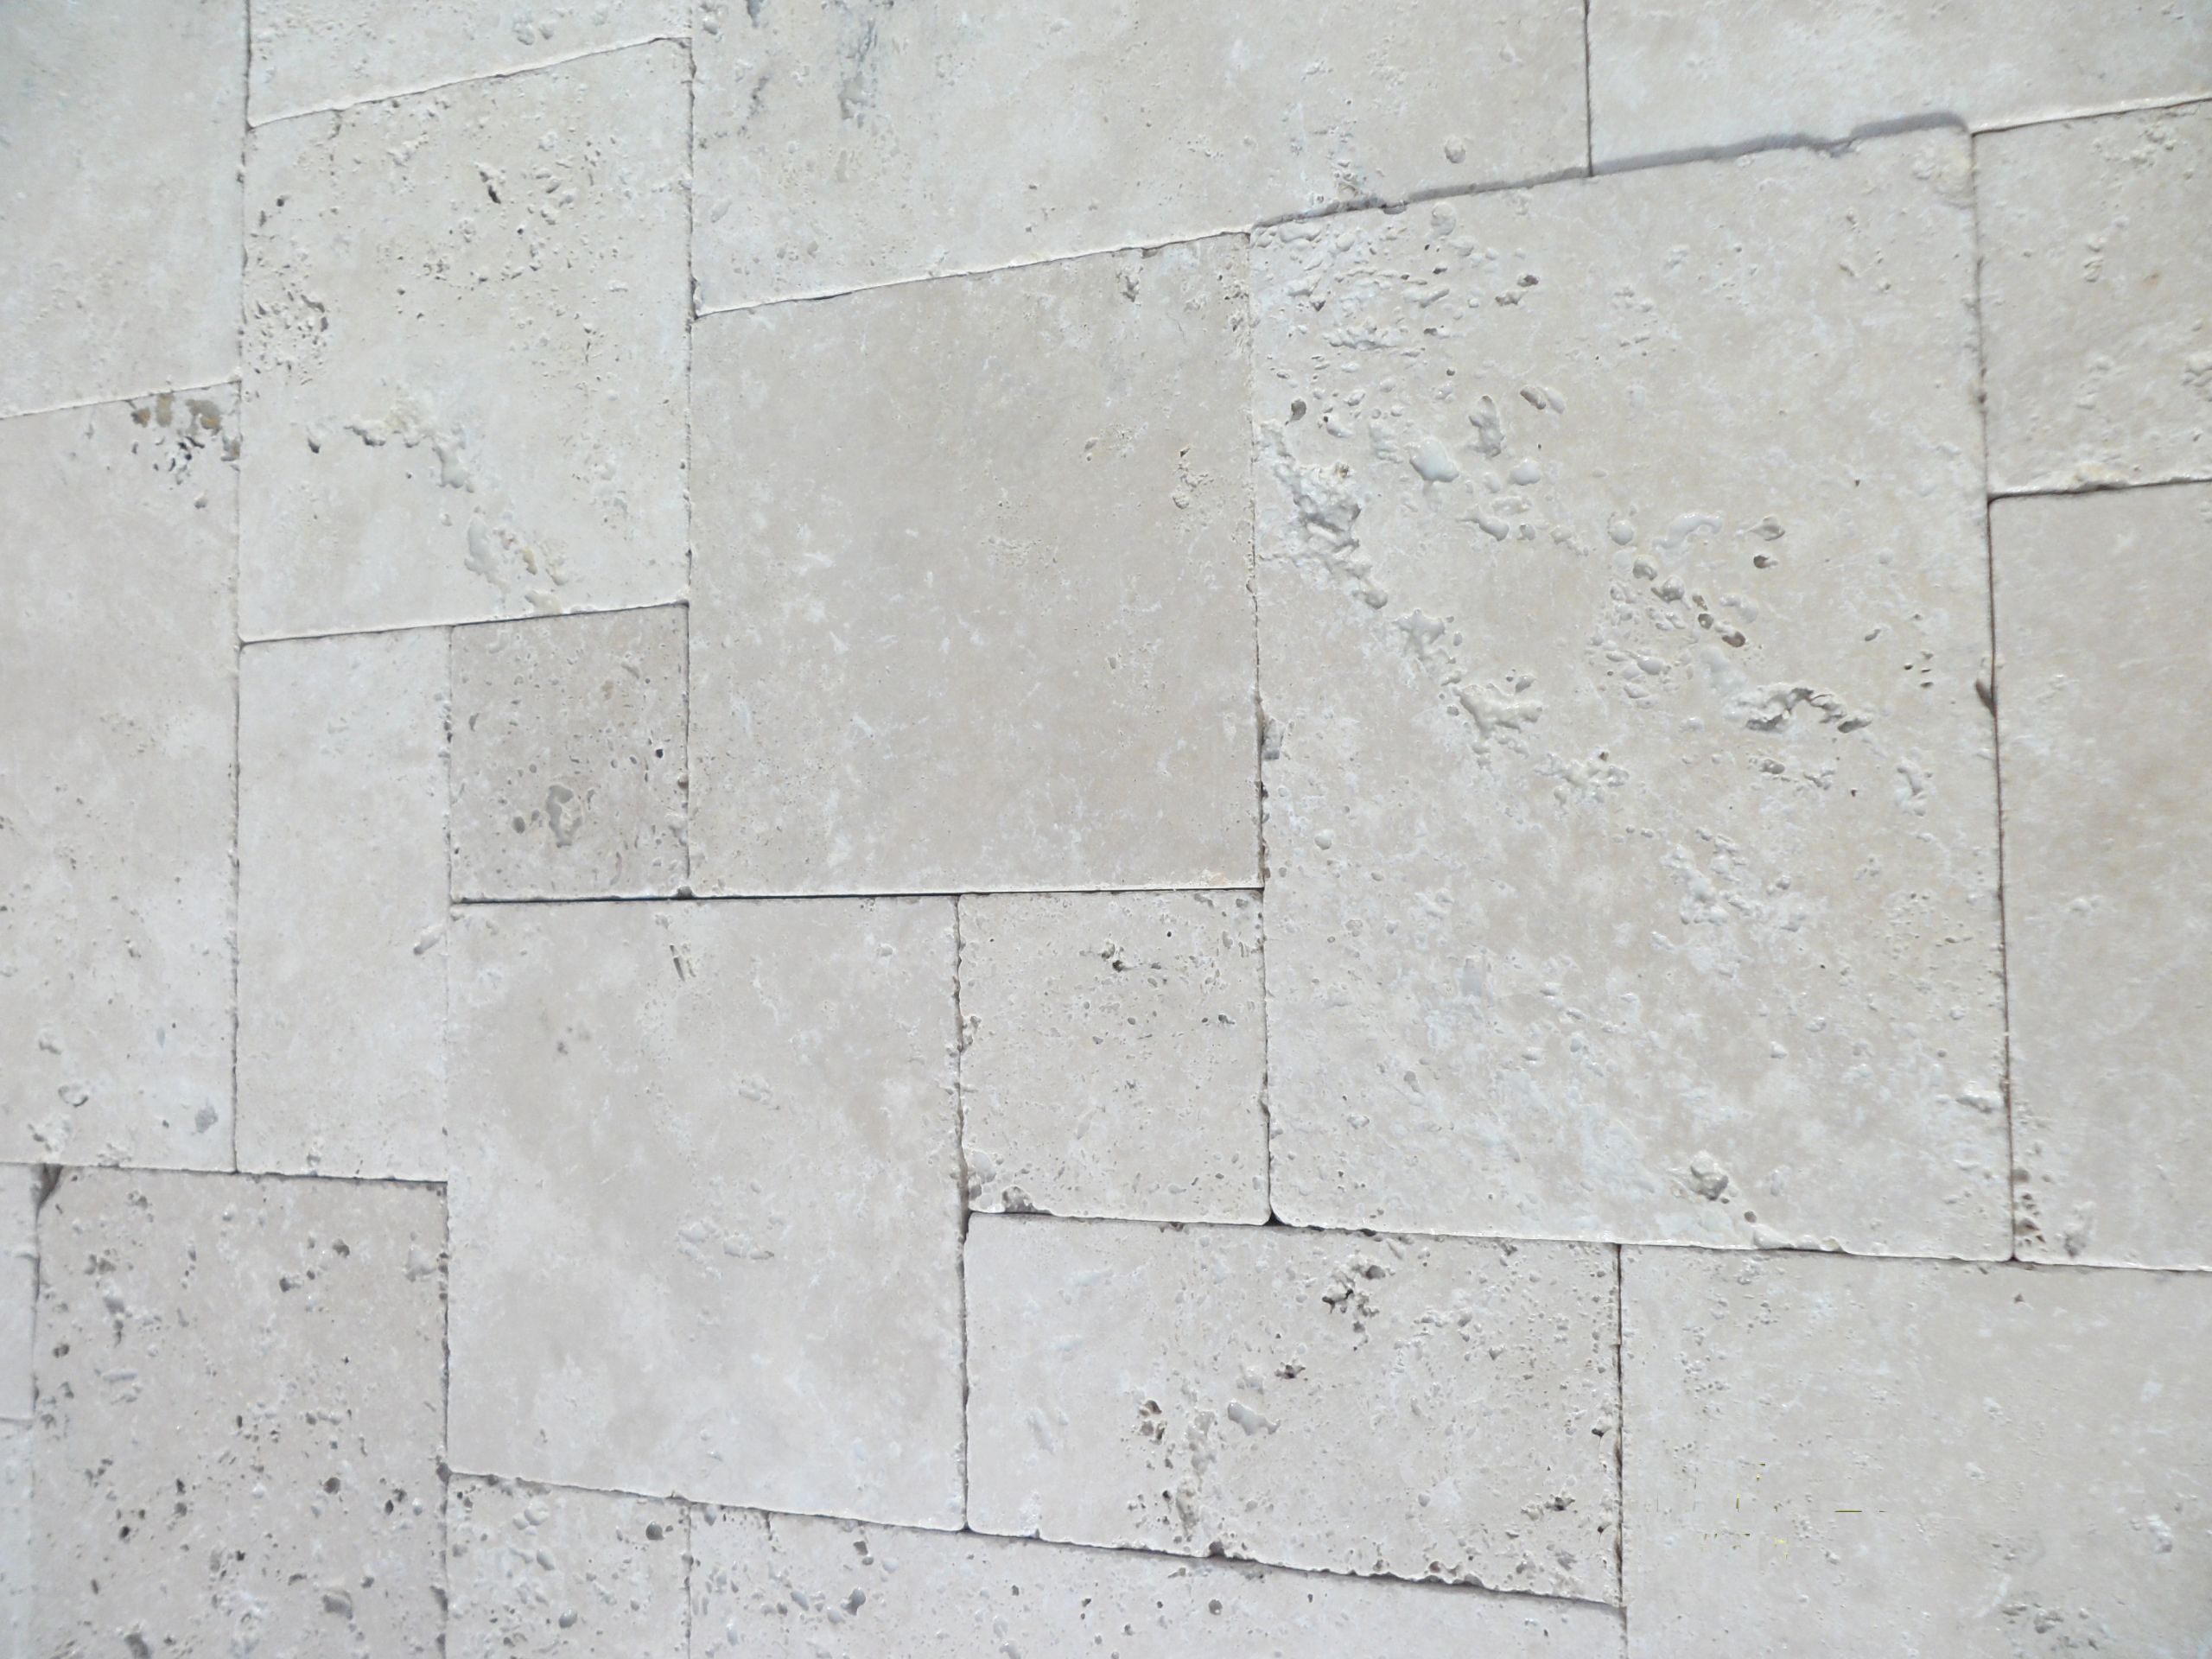 Flooring exciting travertine pavers for outdoor tile ideas tile flooring exciting travertine pavers for outdoor tile ideas dailygadgetfo Choice Image